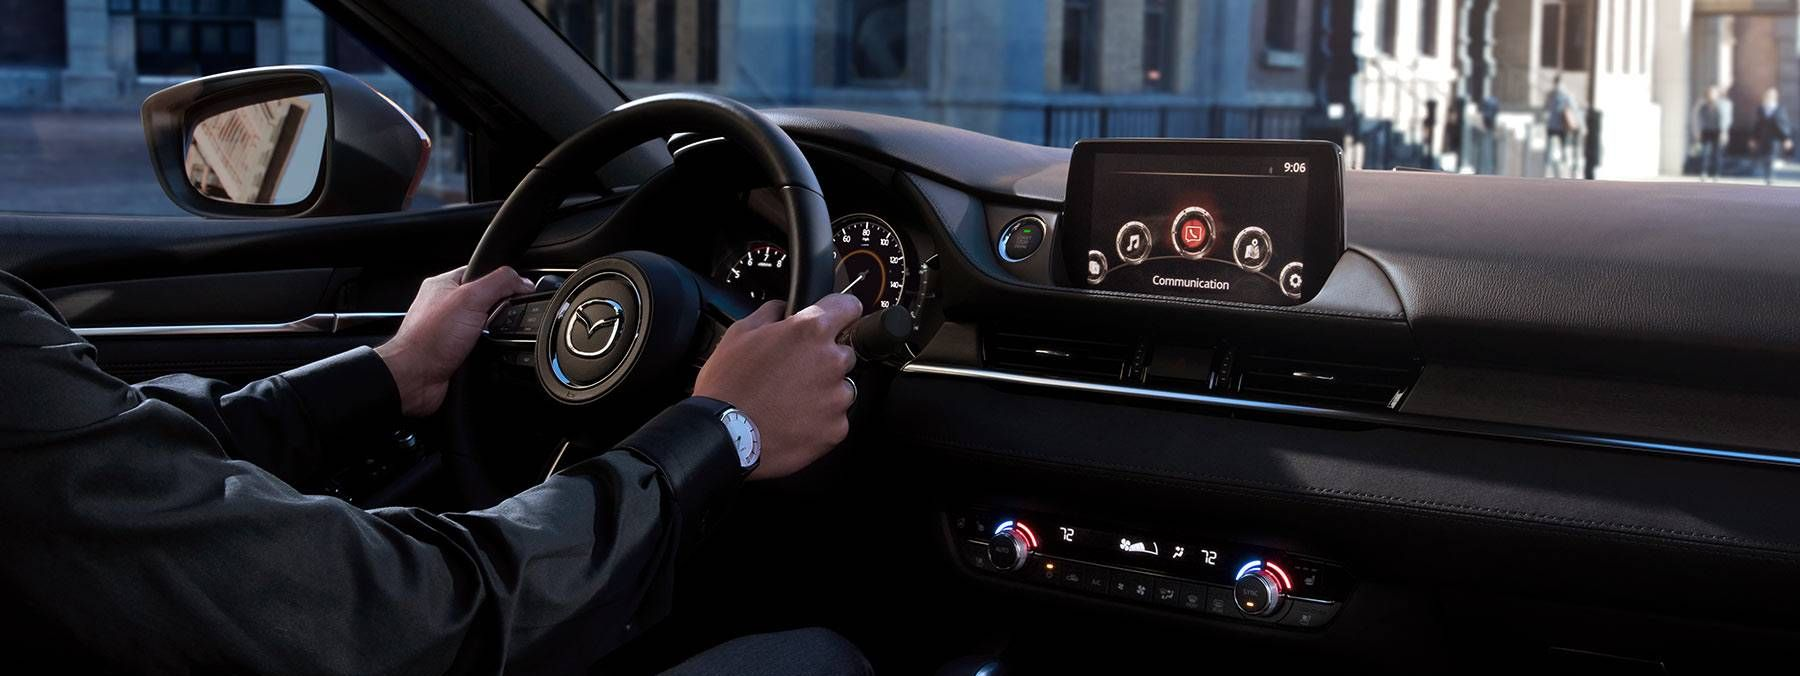 Enjoy the Drive in the 2018 Mazda6!